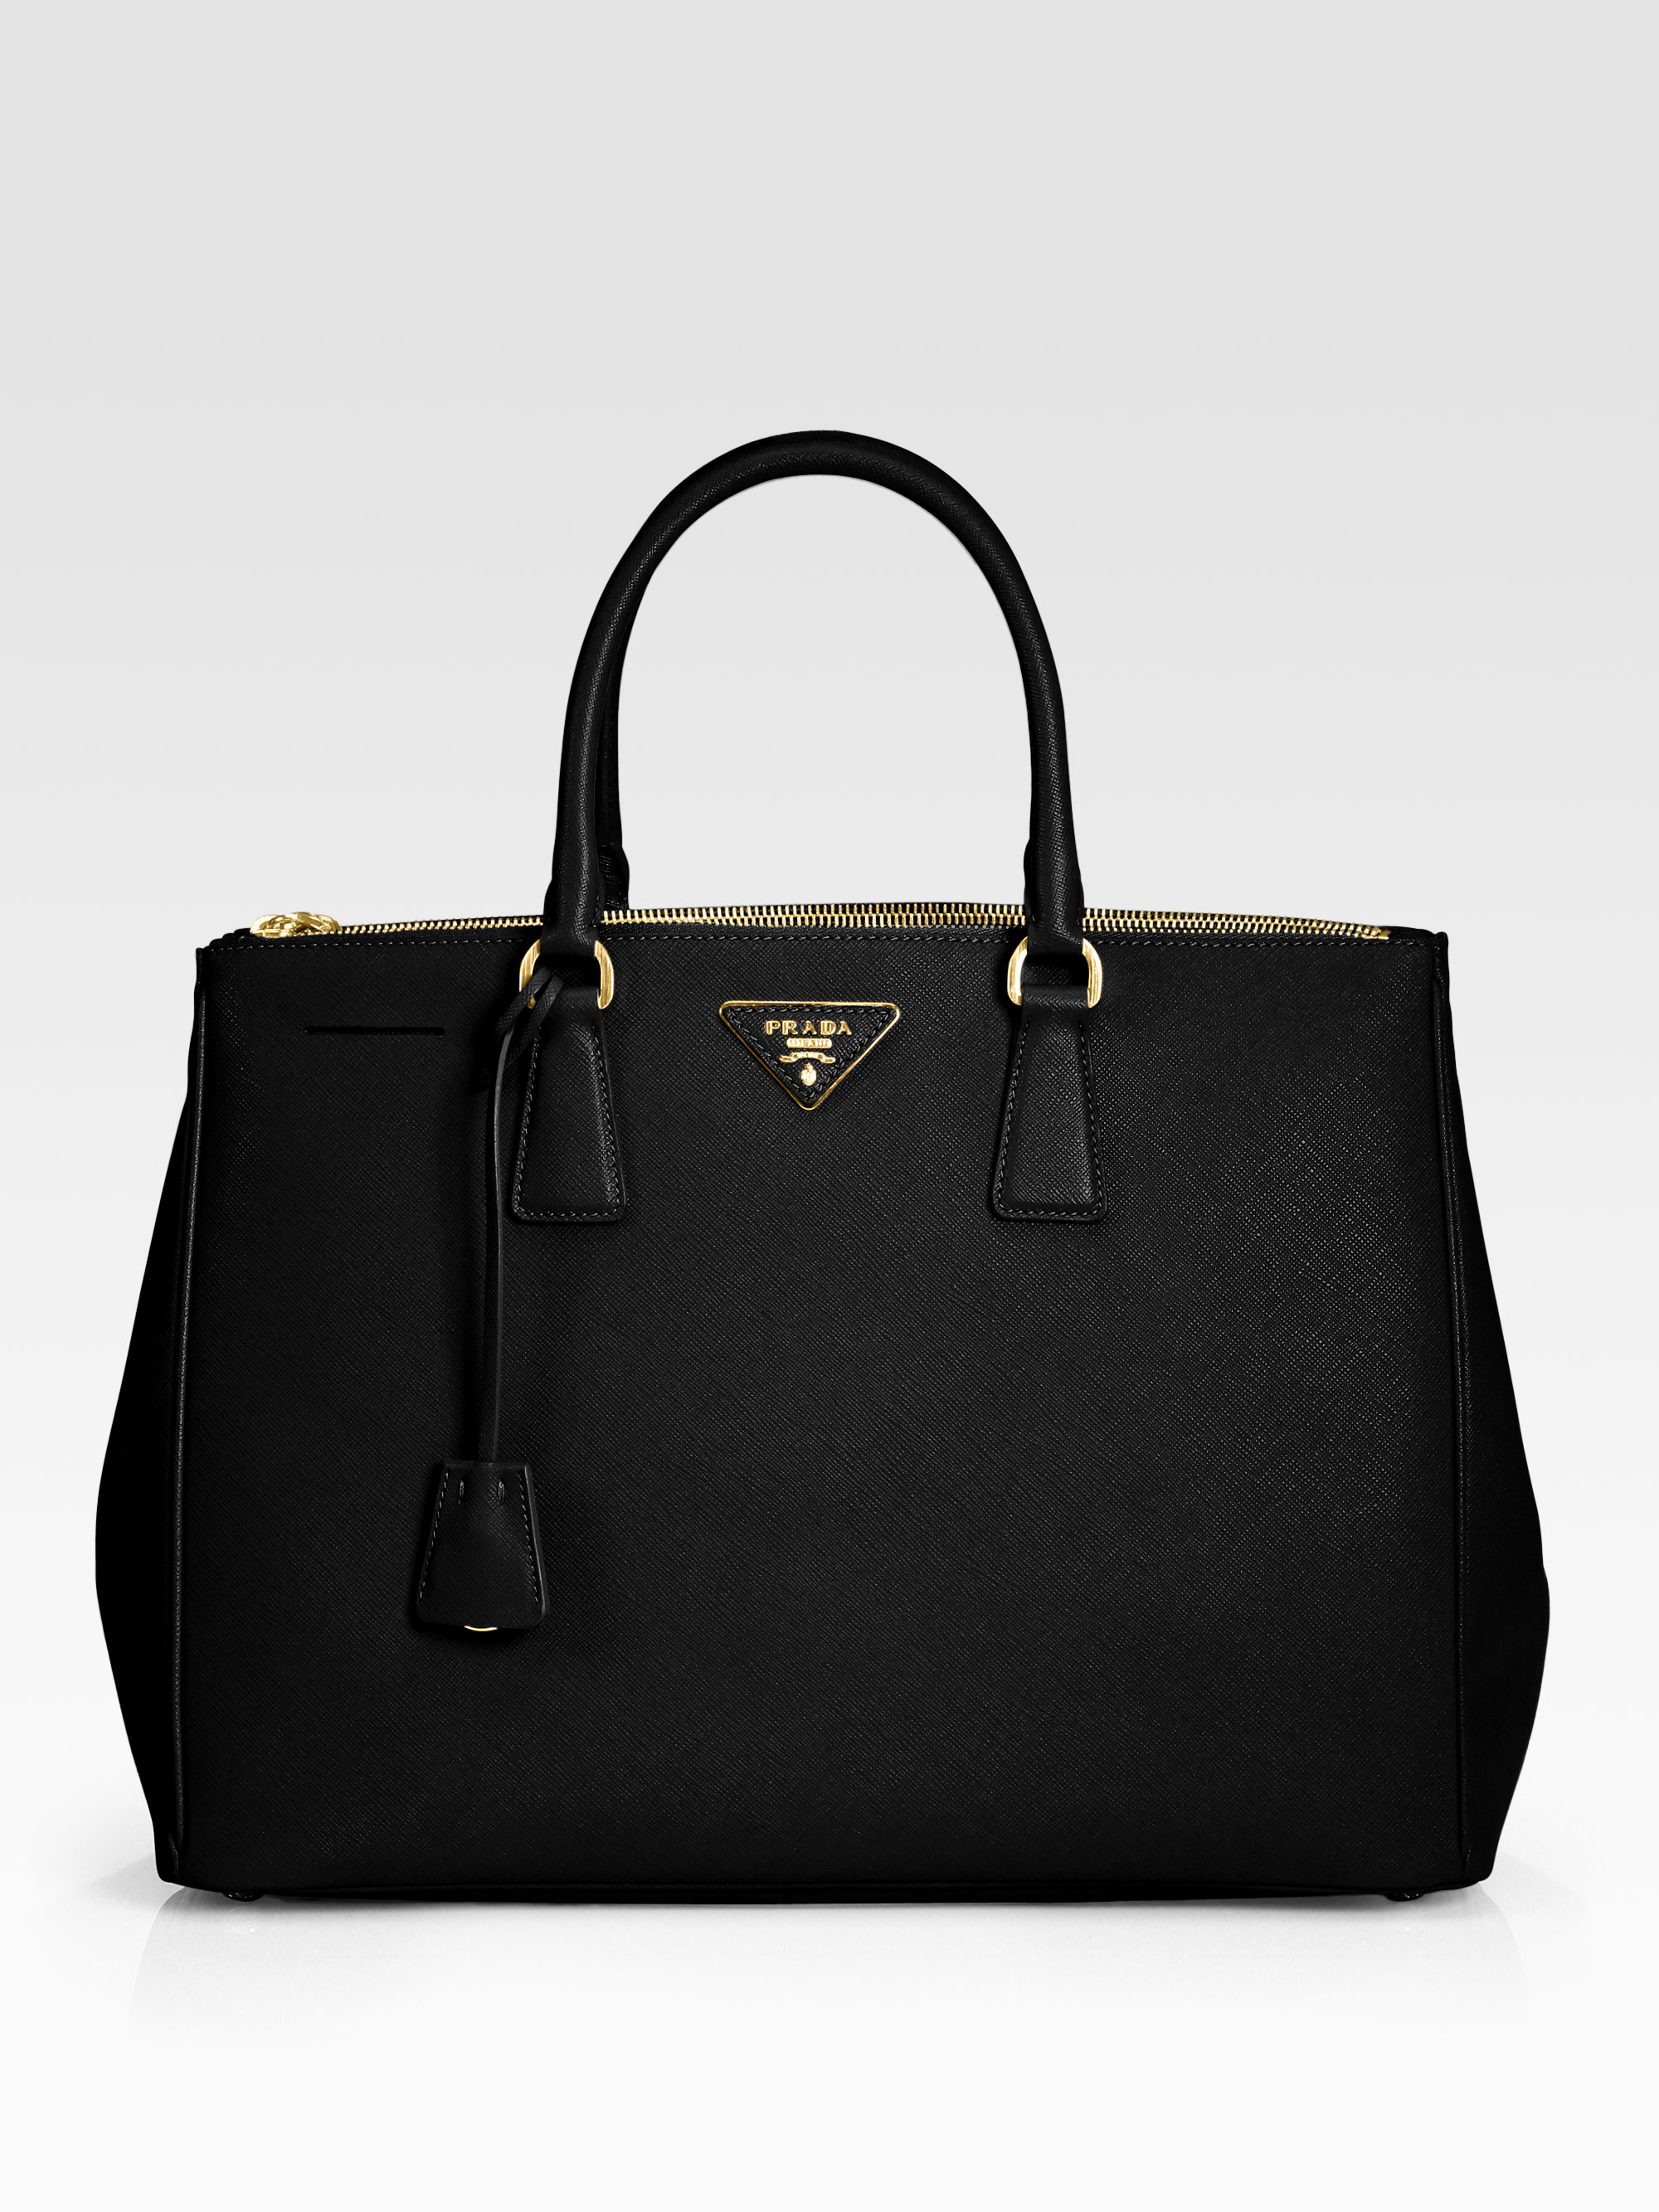 how much is prada saffiano bag - Prada Galleria City Calf Leather Grommet Double Handle Satchel in ...